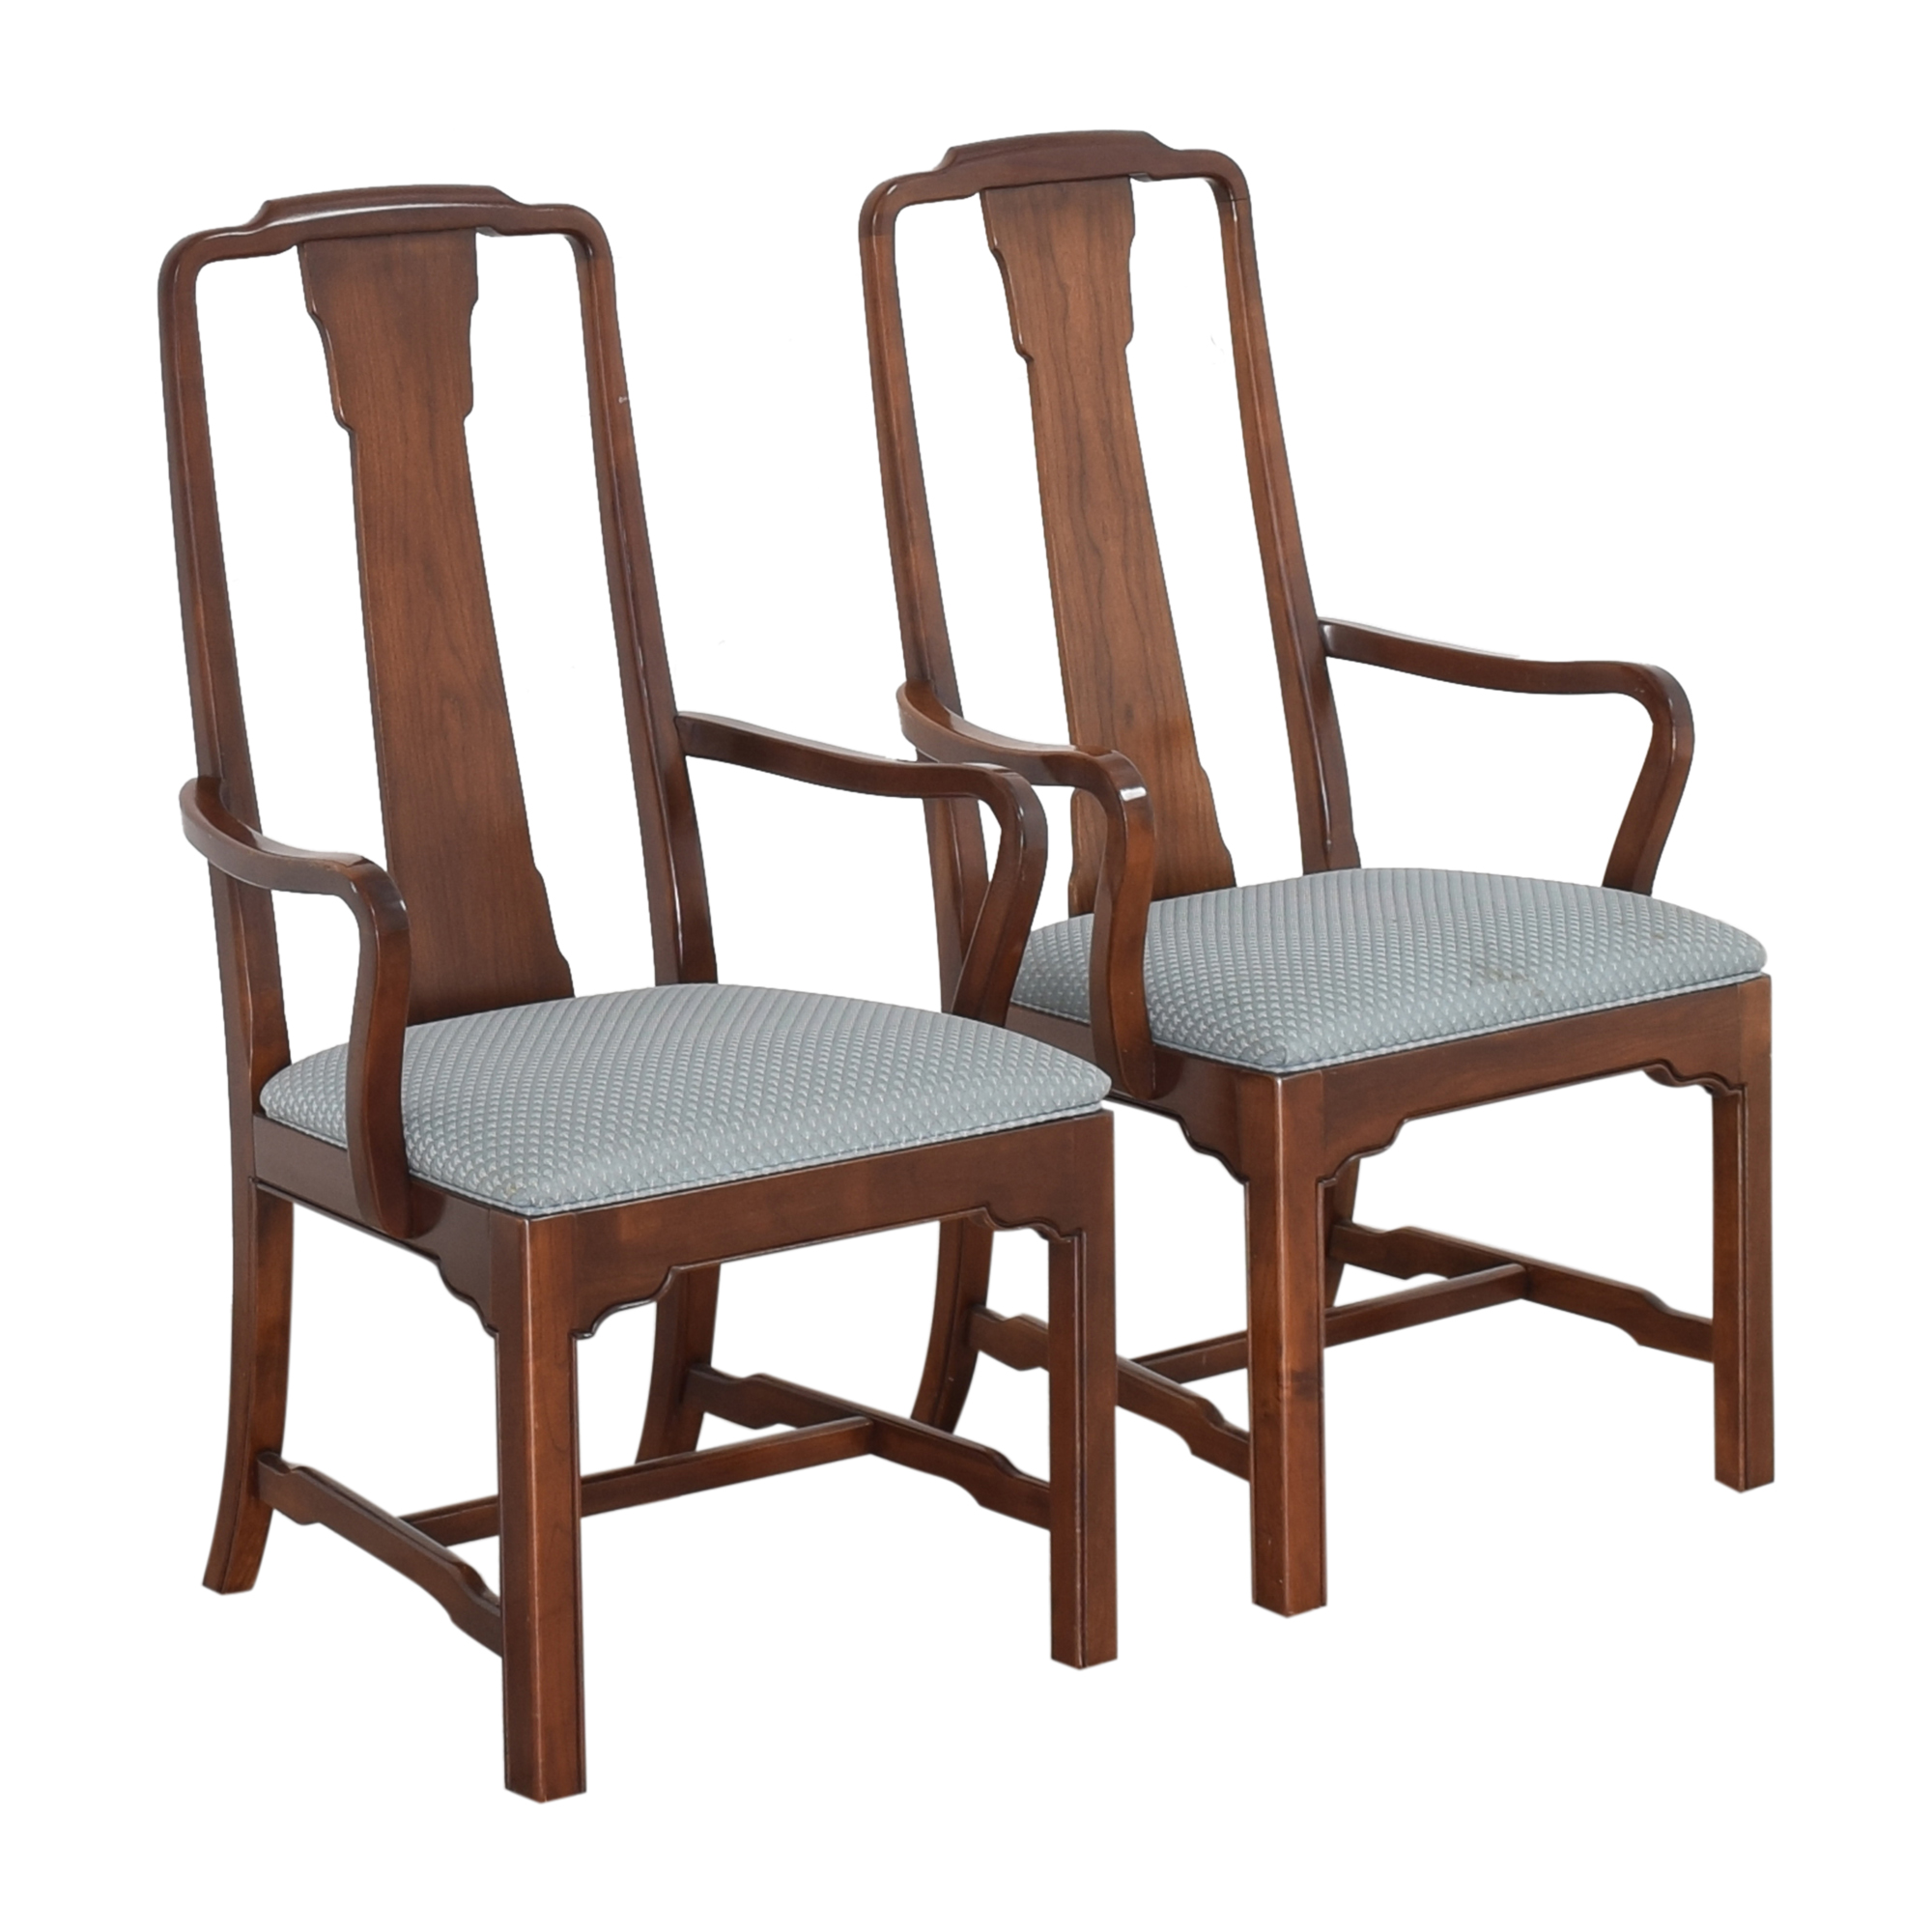 shop Ethan Allen Canova Campaign Dining Arm Chairs Ethan Allen Chairs